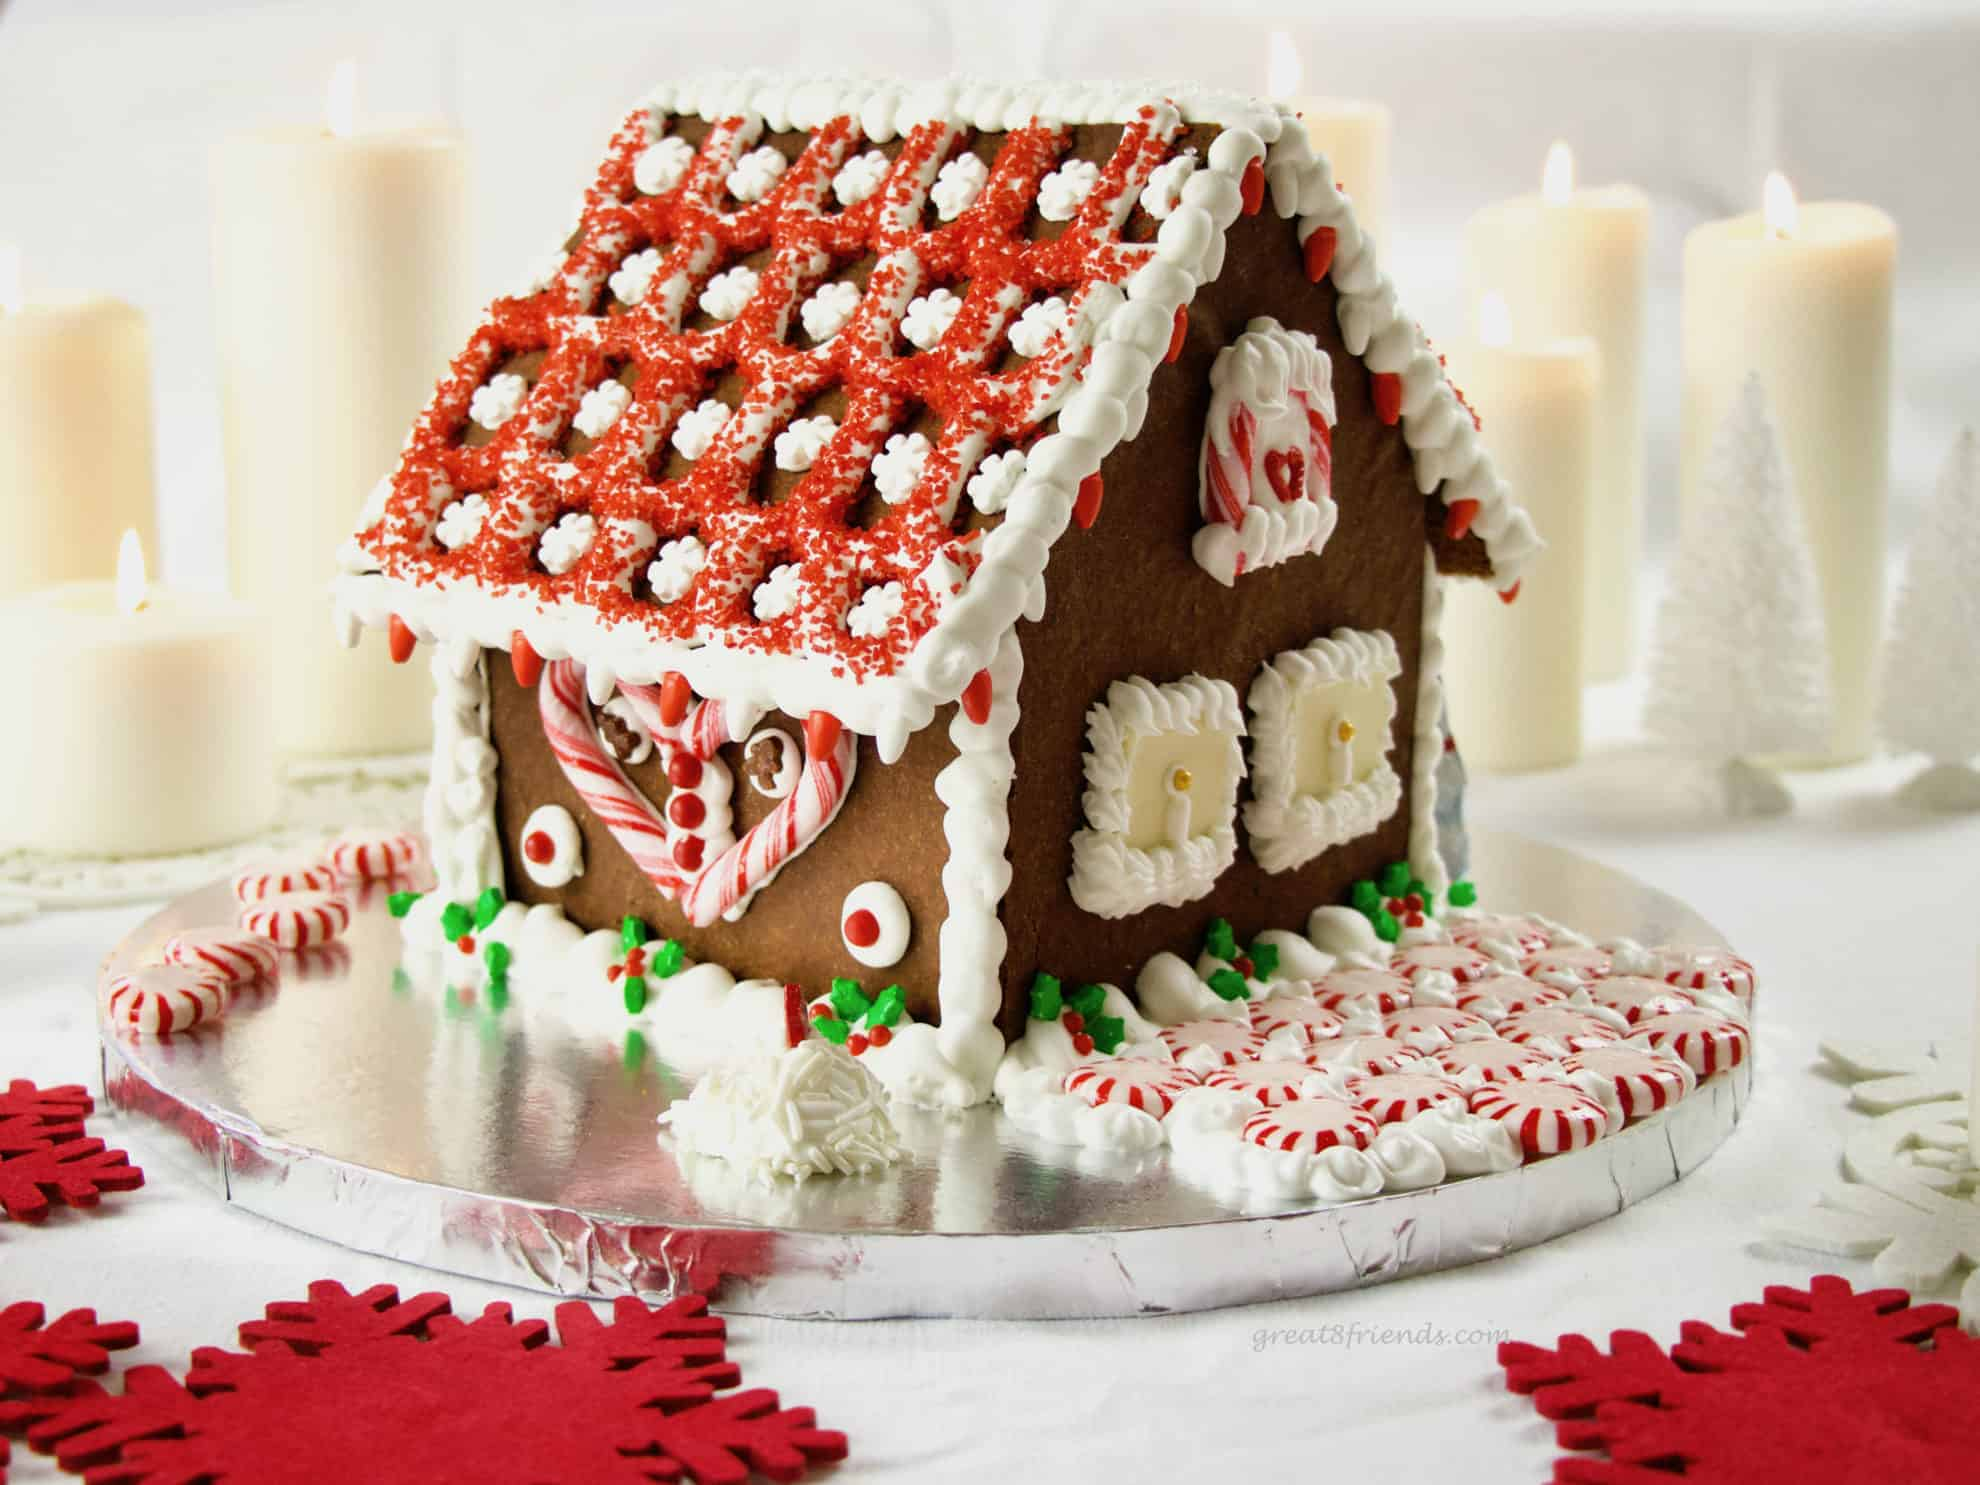 Don't buy a kit! Add whimsy and fun to your Christmas by making this DIY Festive Gingerbread House! We will show you how to make this edible decoration.